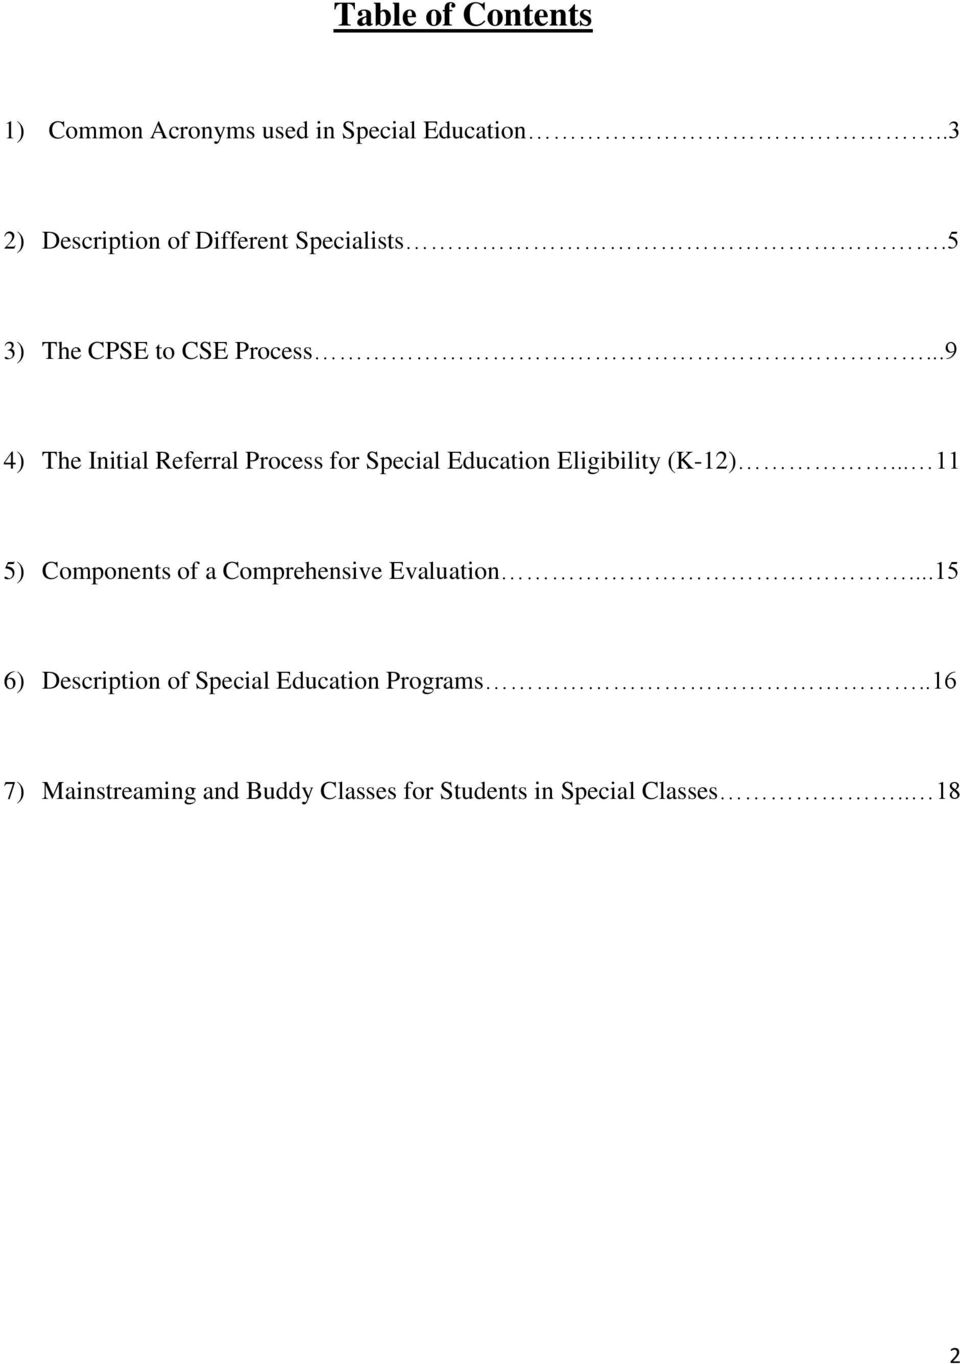 ..9 4) The Initial Referral Process for Special Education Eligibility (K-12).